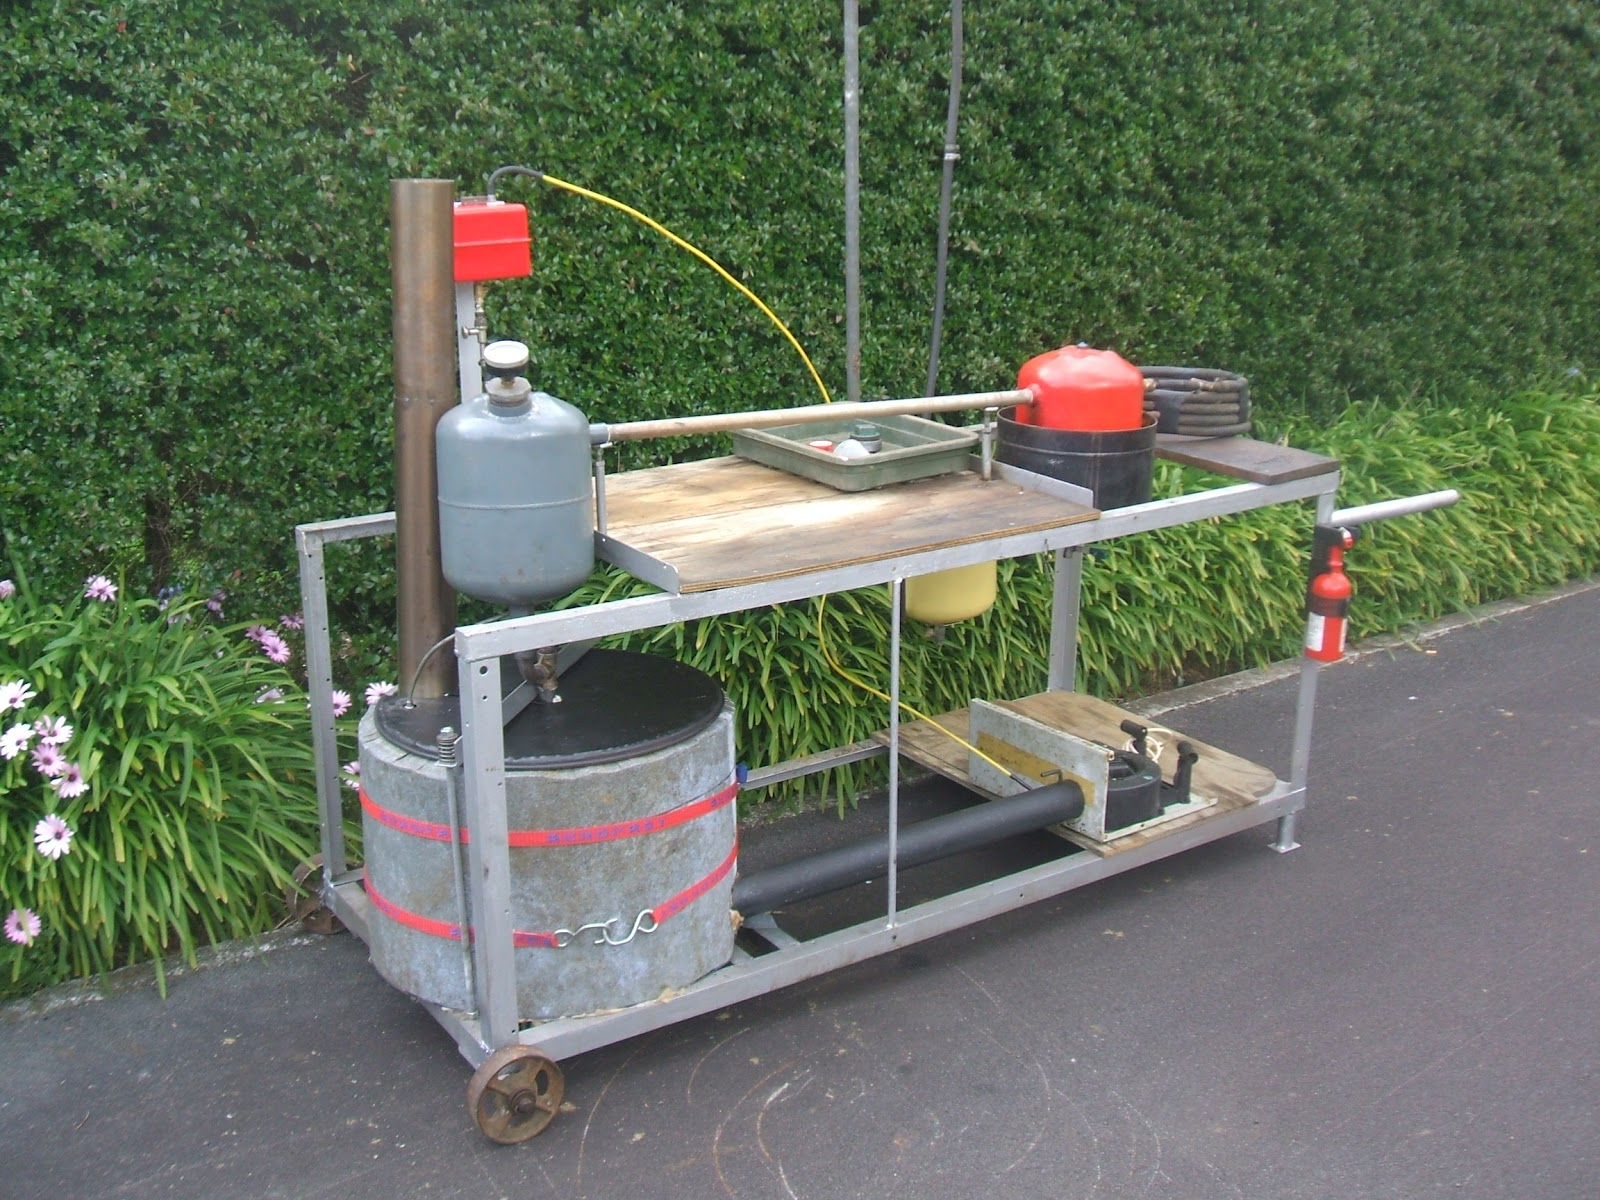 Fuel from waste oil and plastic DIY Orion: Turk burner